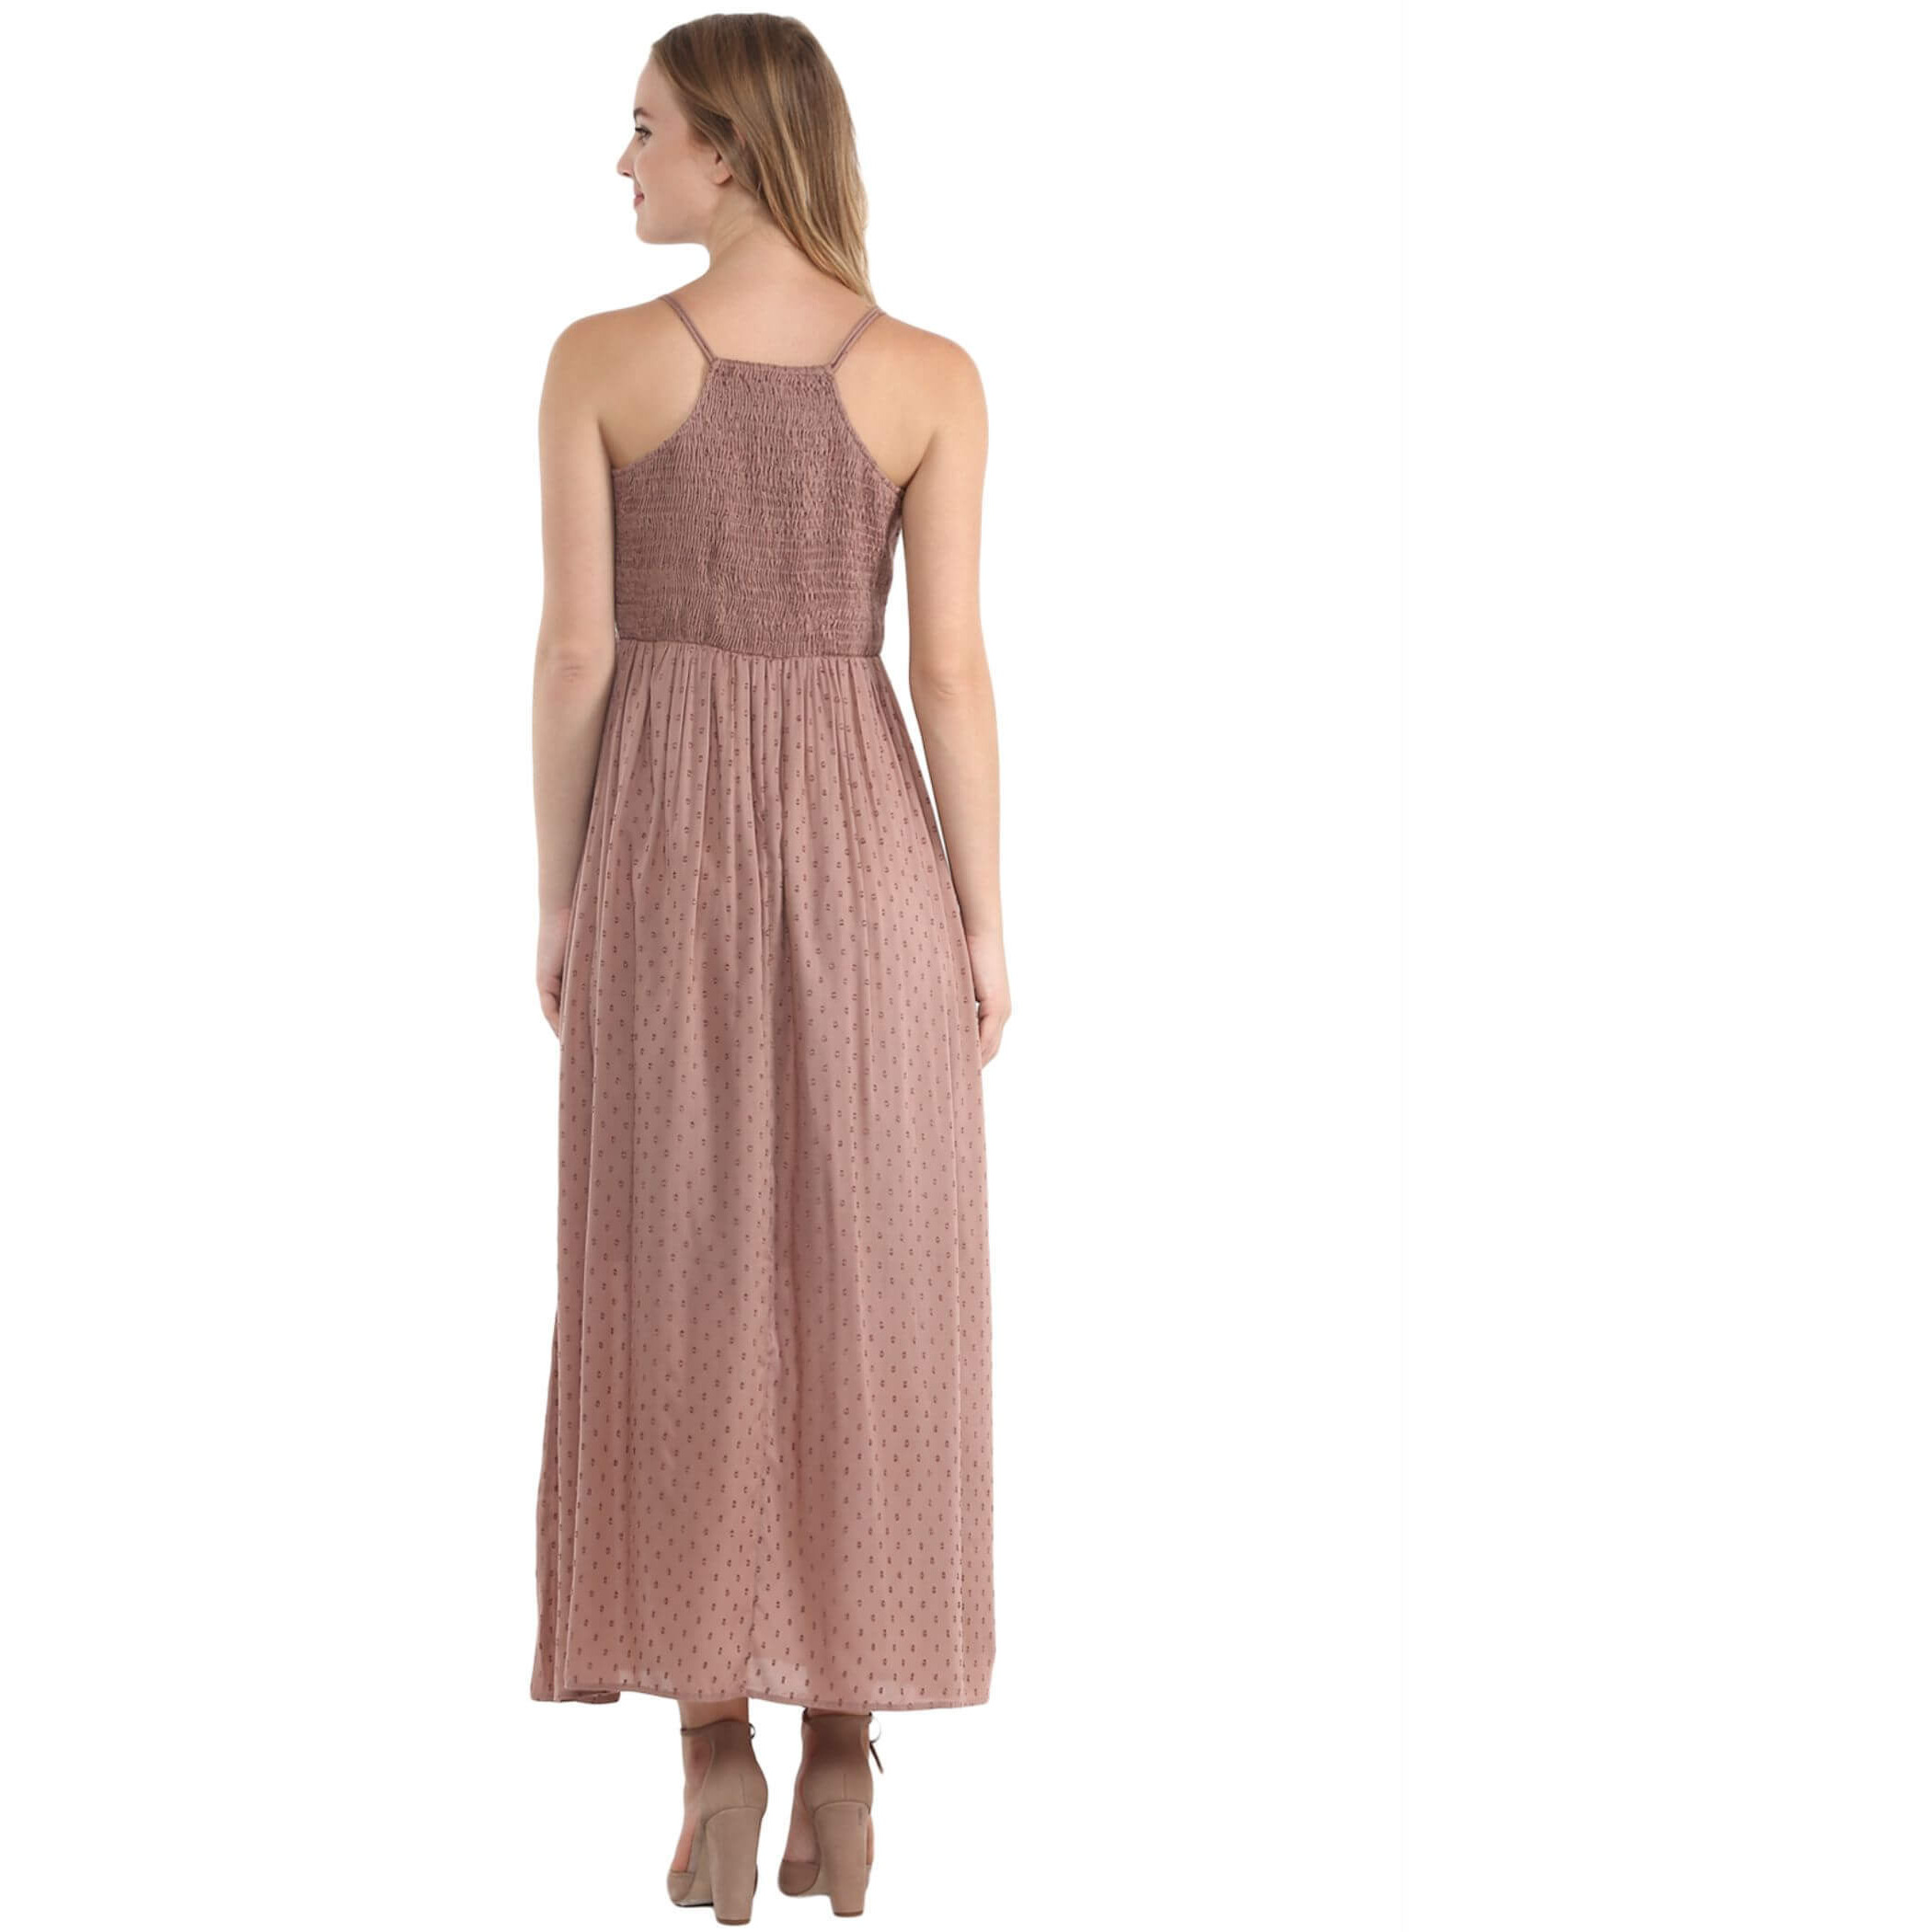 The Vanca Nude Thin Strap Maxi Dress With Lace Top